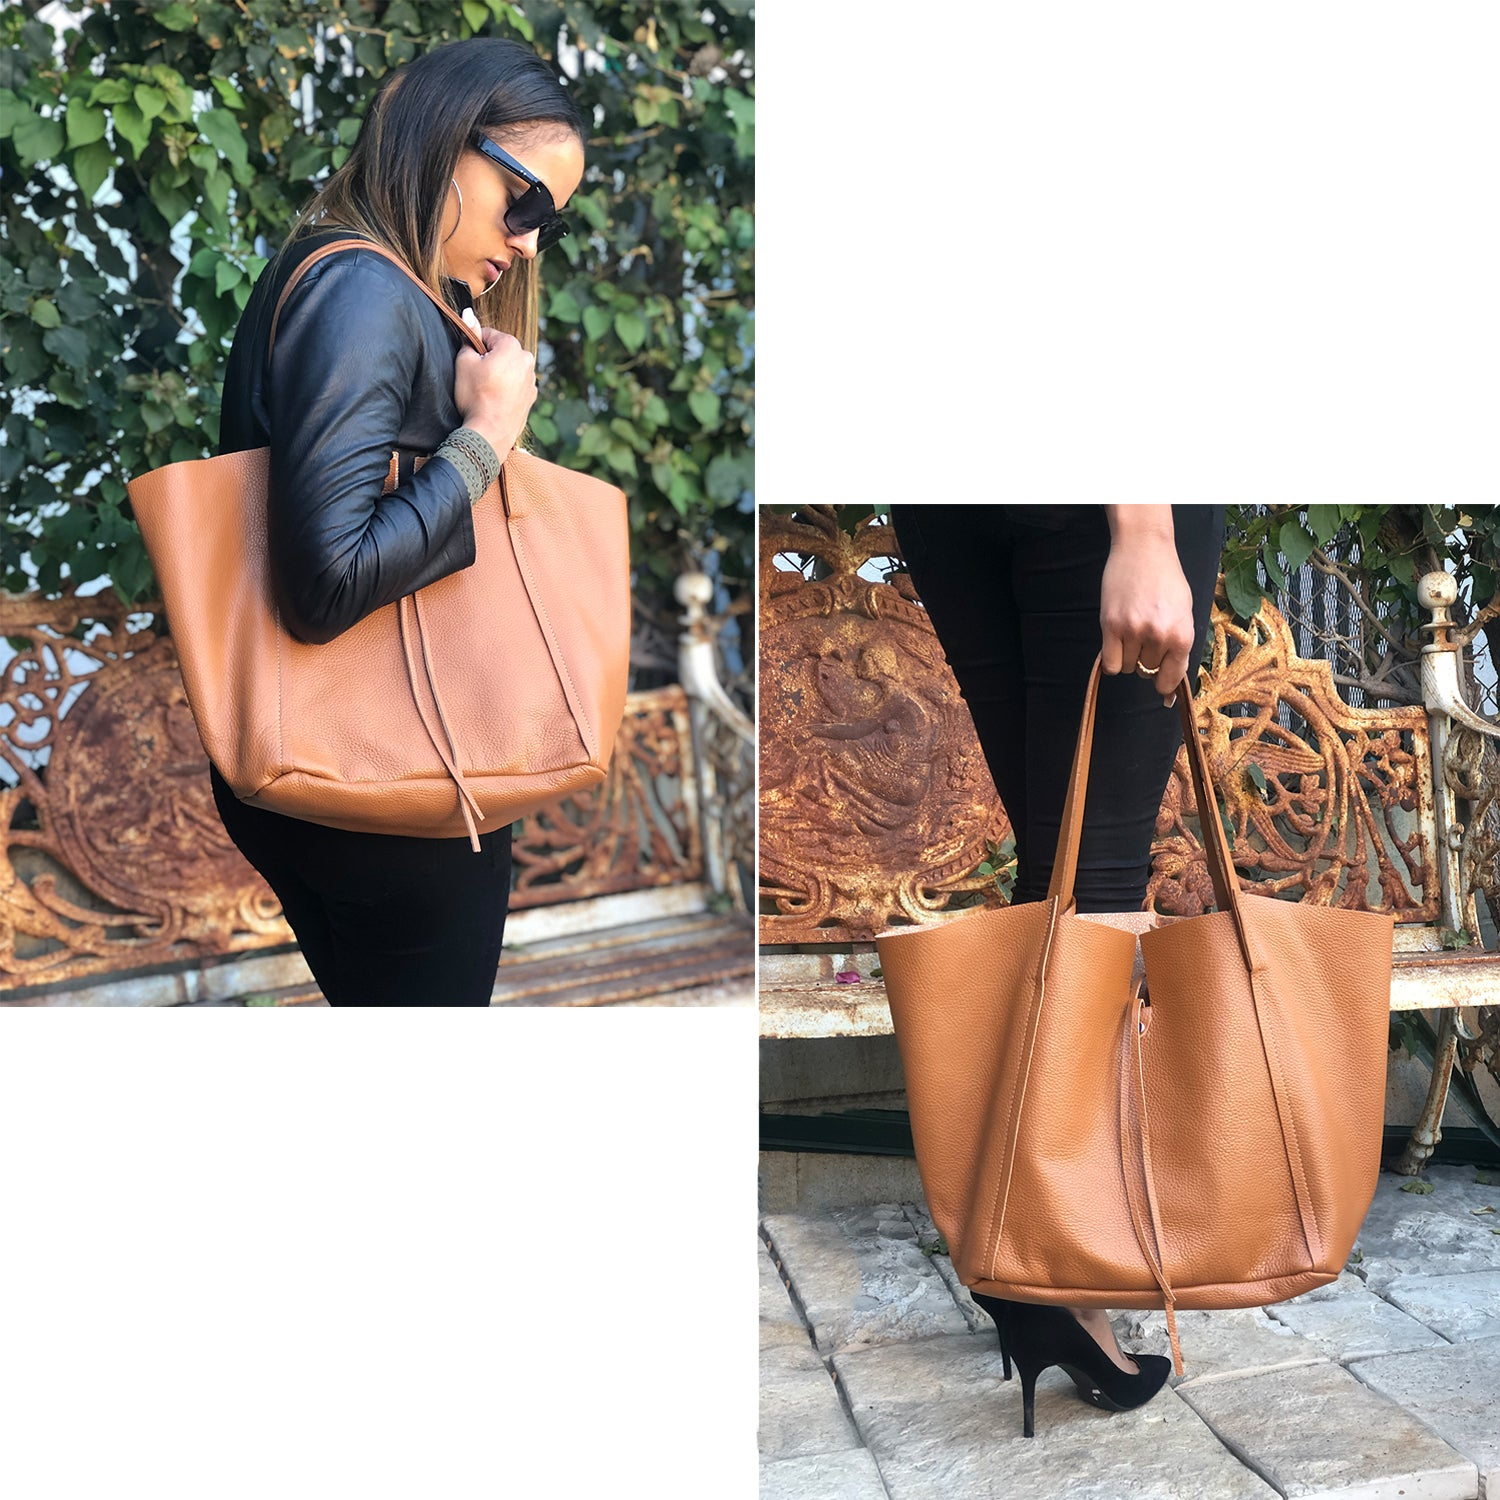 Dollaro & Razza Leather Shoulder Bag (B175)